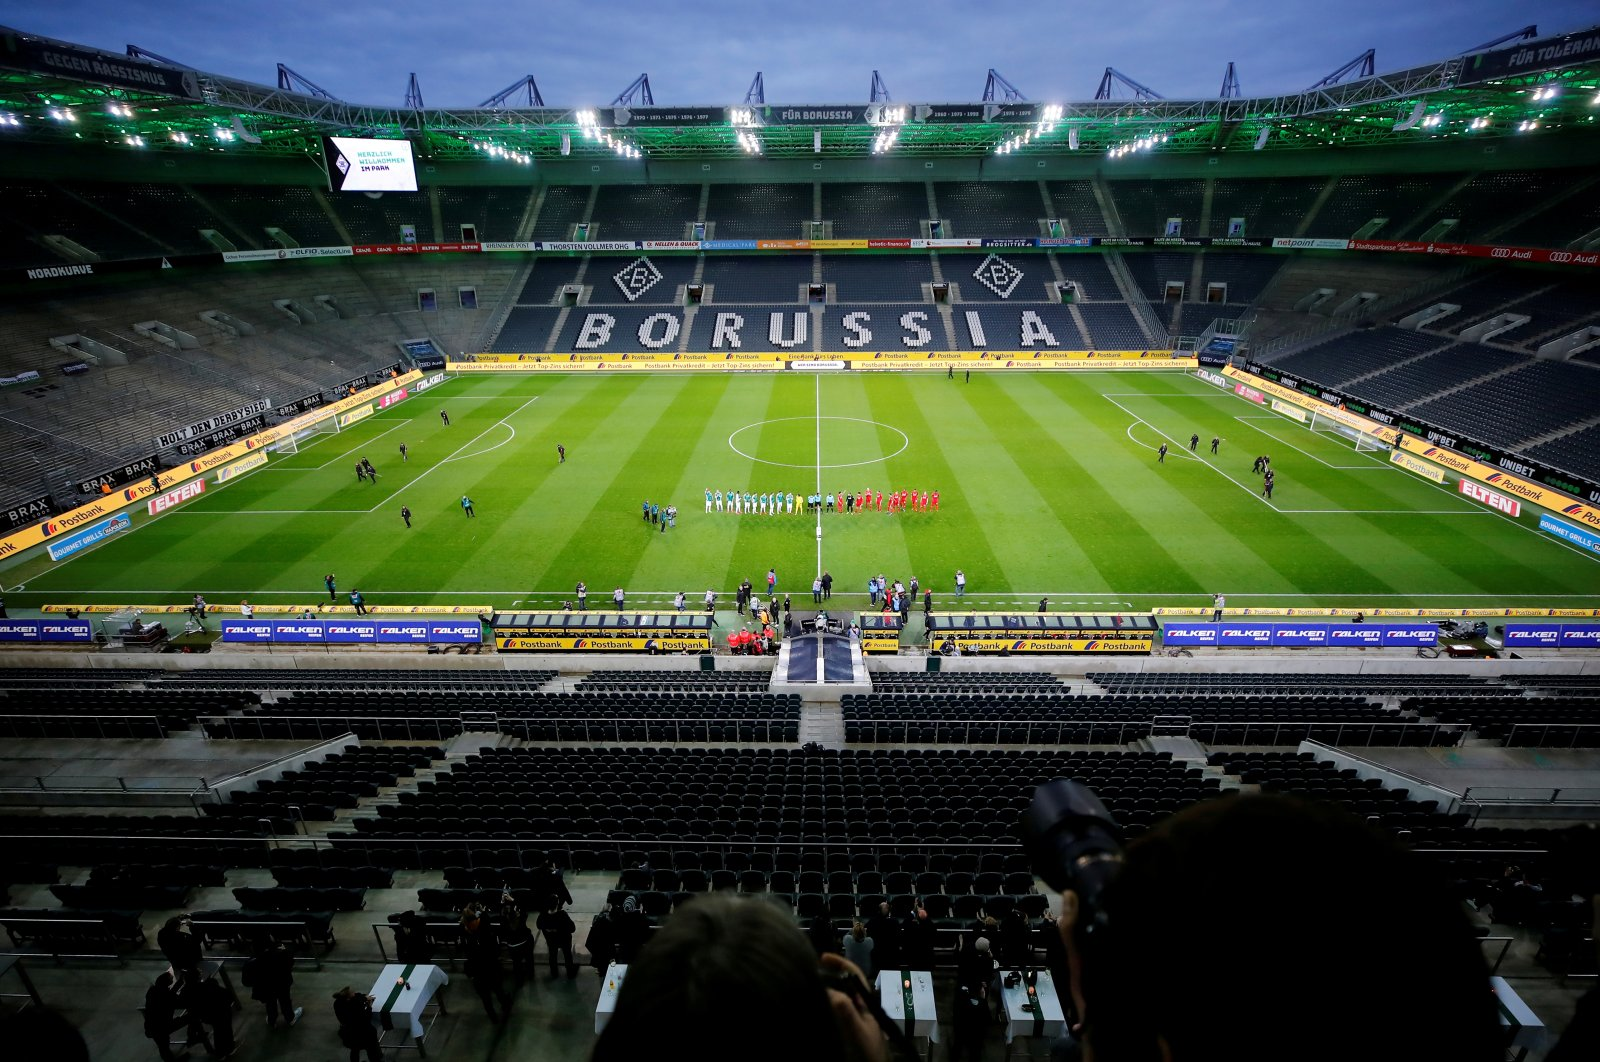 A general view of the stadium ahead of a Bundesliga football match between Borussia Monchengladbach and FC Cologne at the Borussia-Park in Monchengladbach, Germany, March 11, 2020. (Reuters Photo)